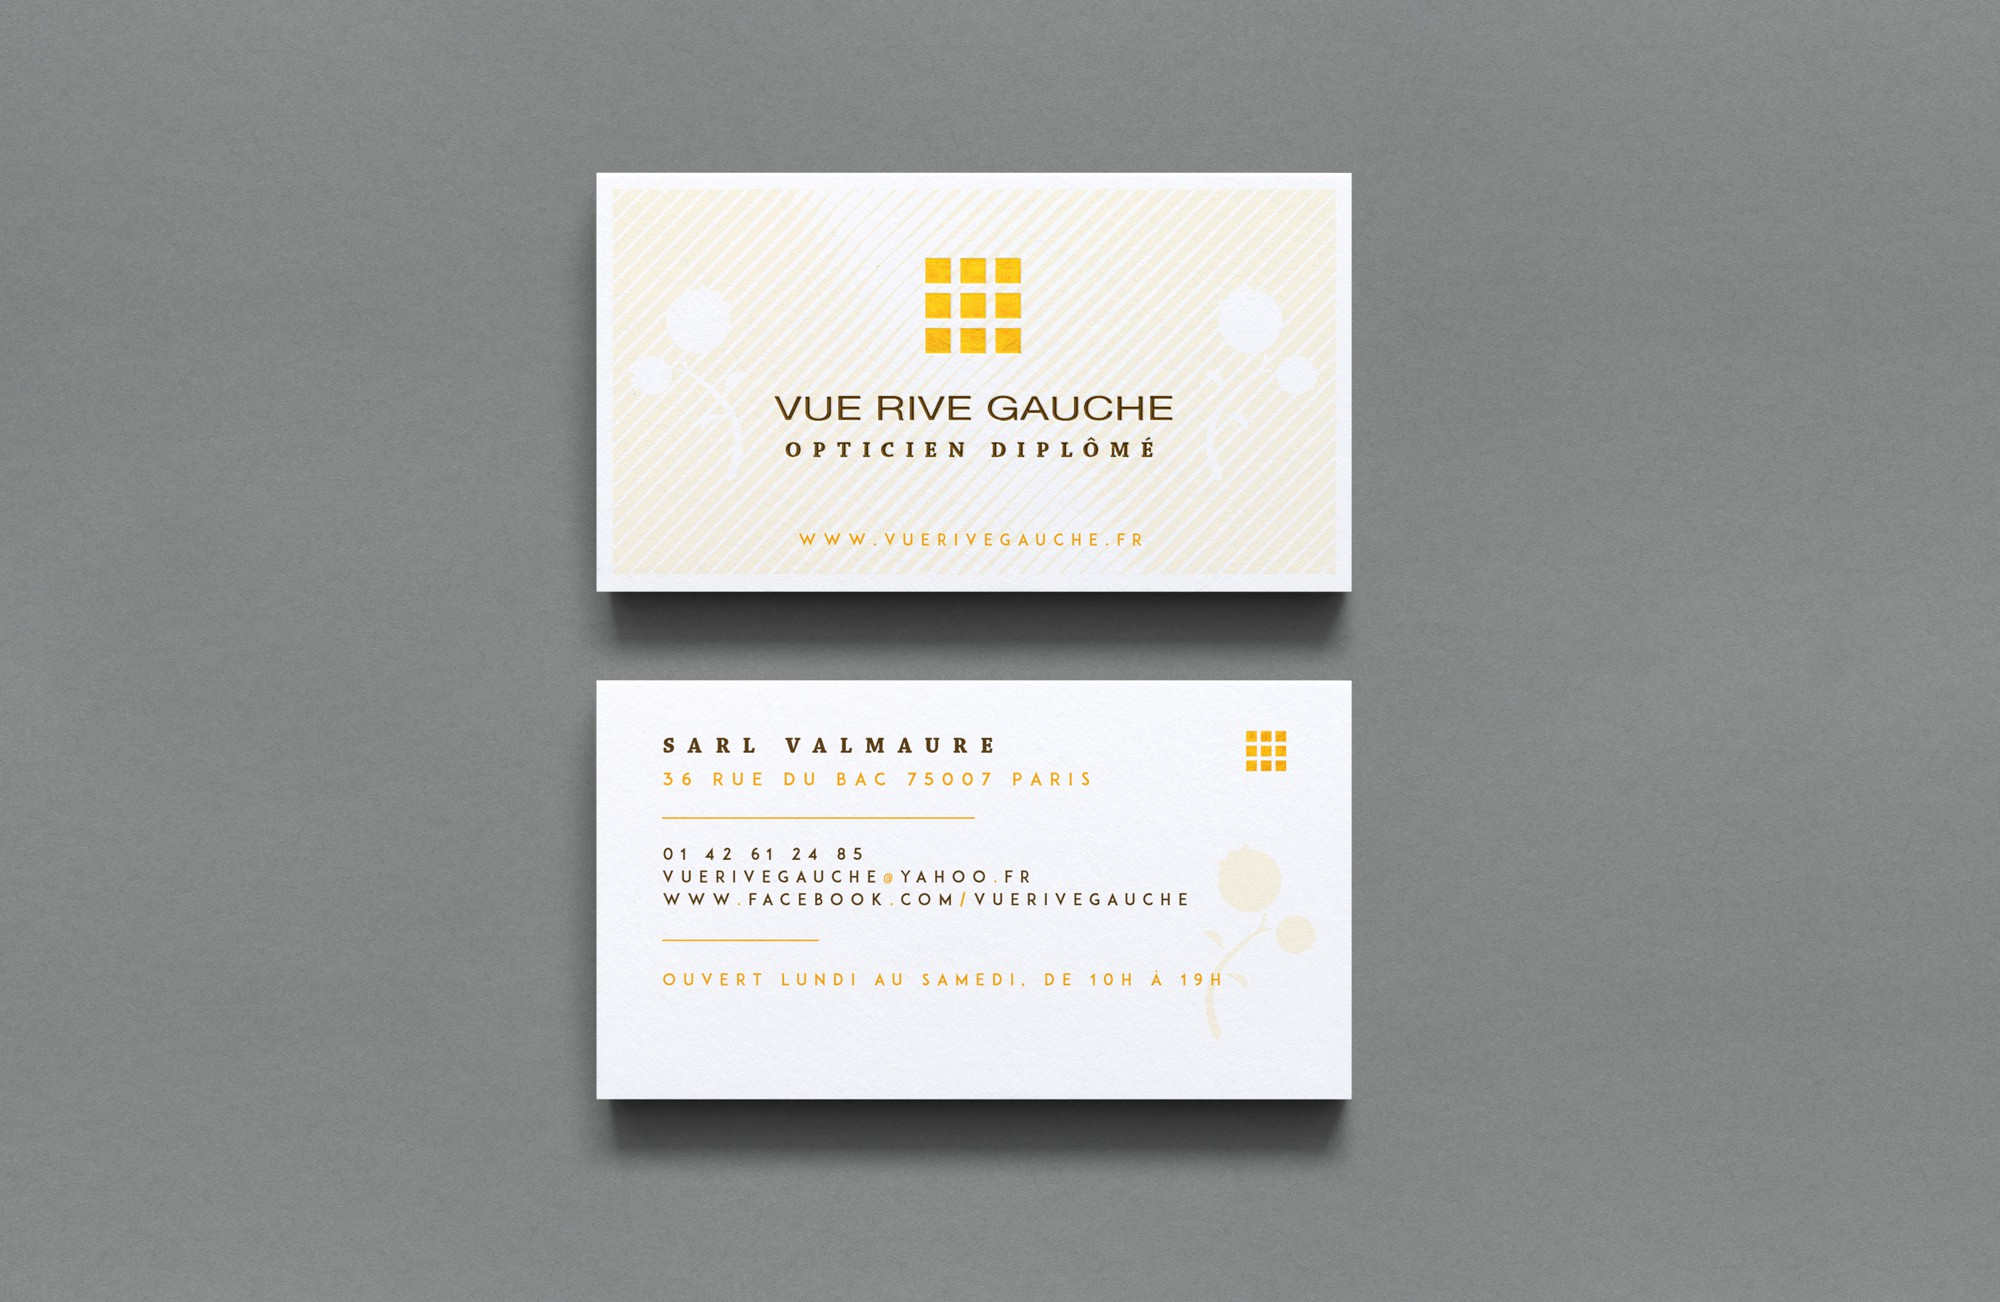 Creating a new business card for a chic optician in Paris